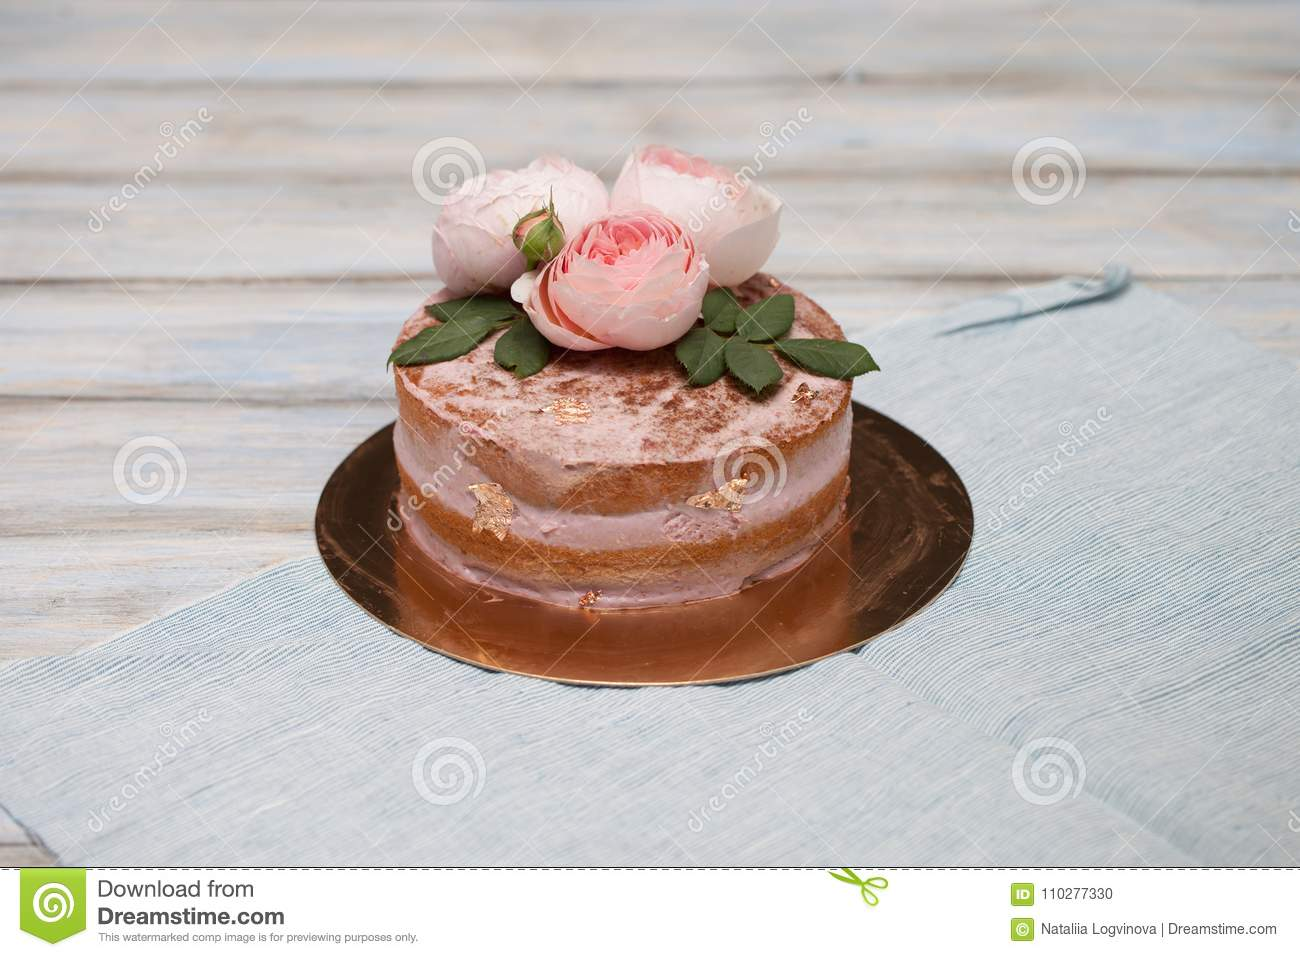 Homemade Buttercream Round Cake With Pink Rose Flowers On Top